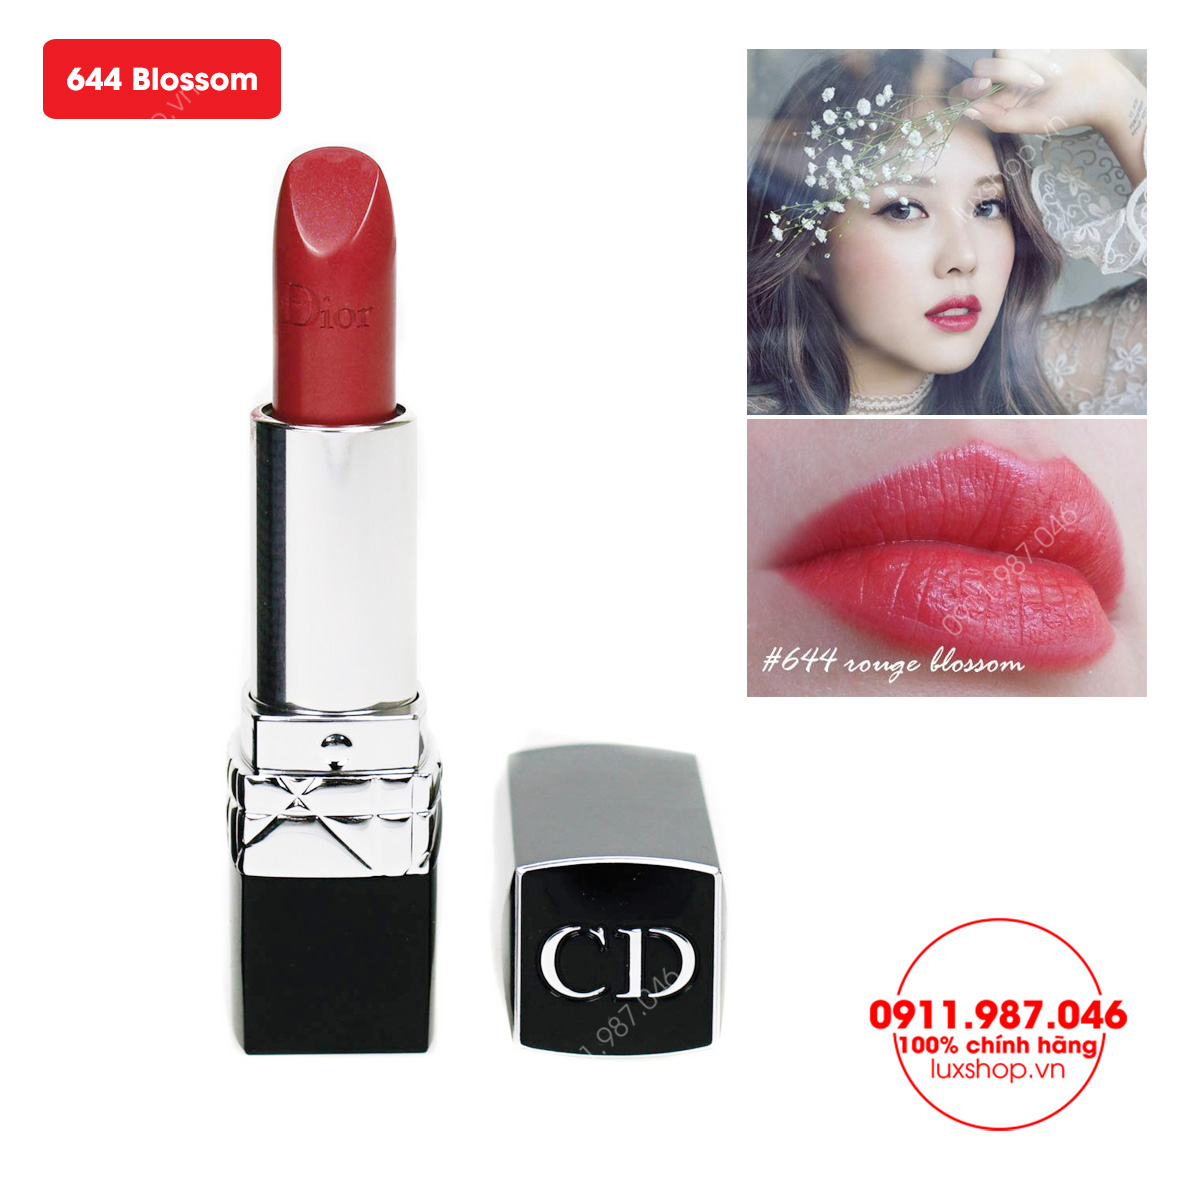 son-moi-cao-cap-dior-rouge-644-blossom-mau-do-hong-35g-chinh-hang-phap-l56280